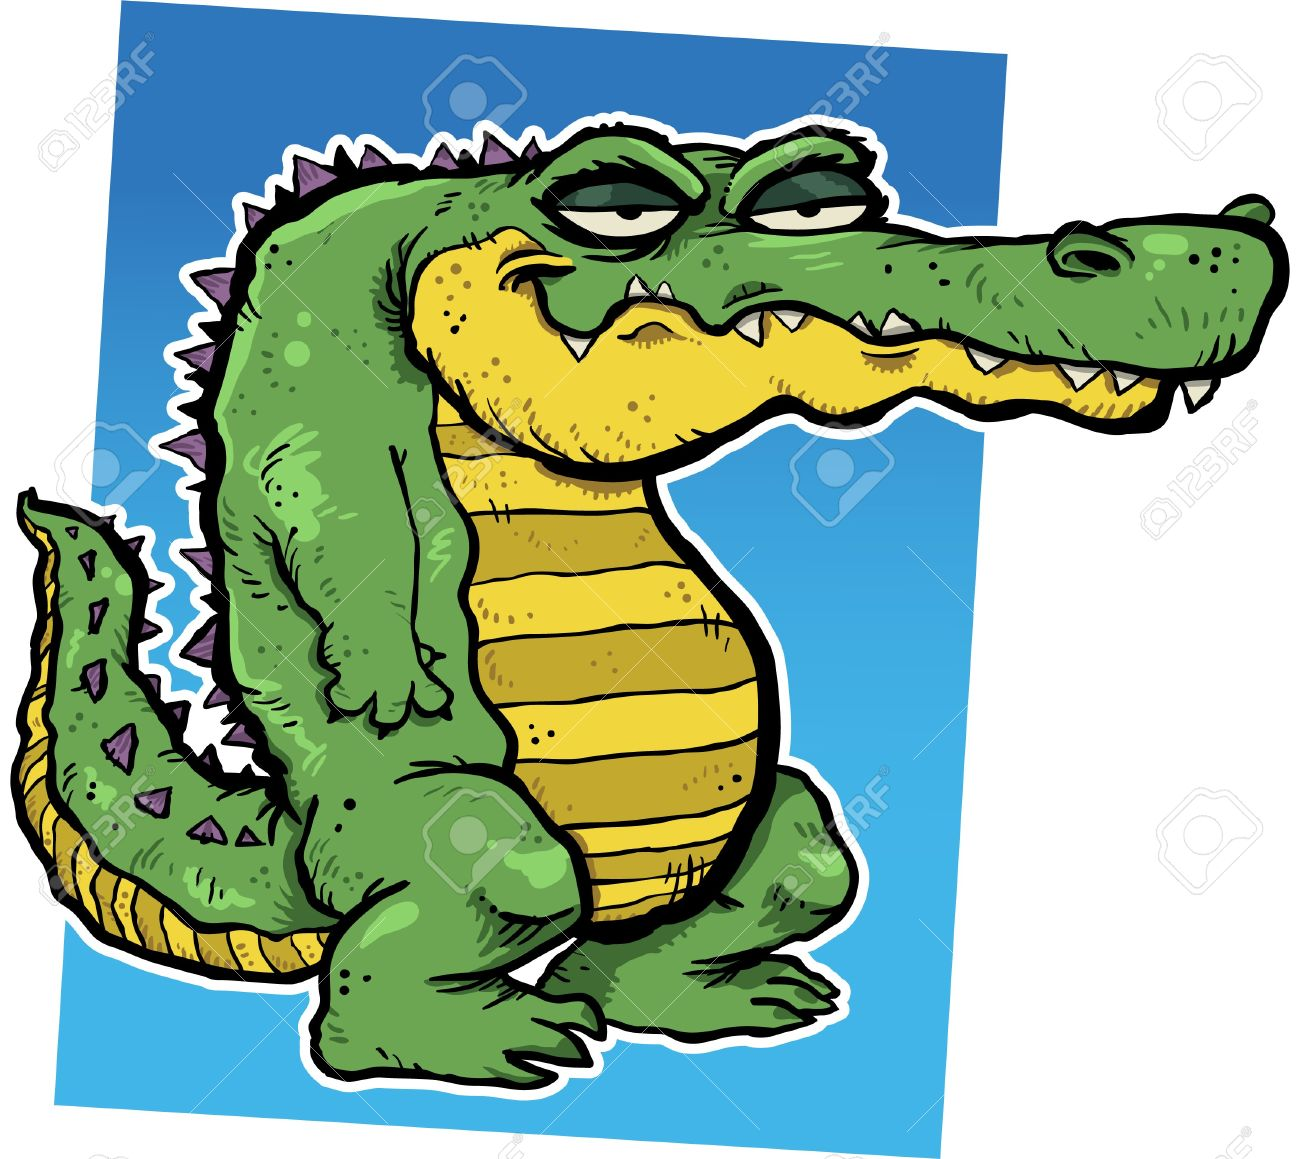 1300x1159 Illustration Of A Smirking Cartoon Alligator. Royalty Free